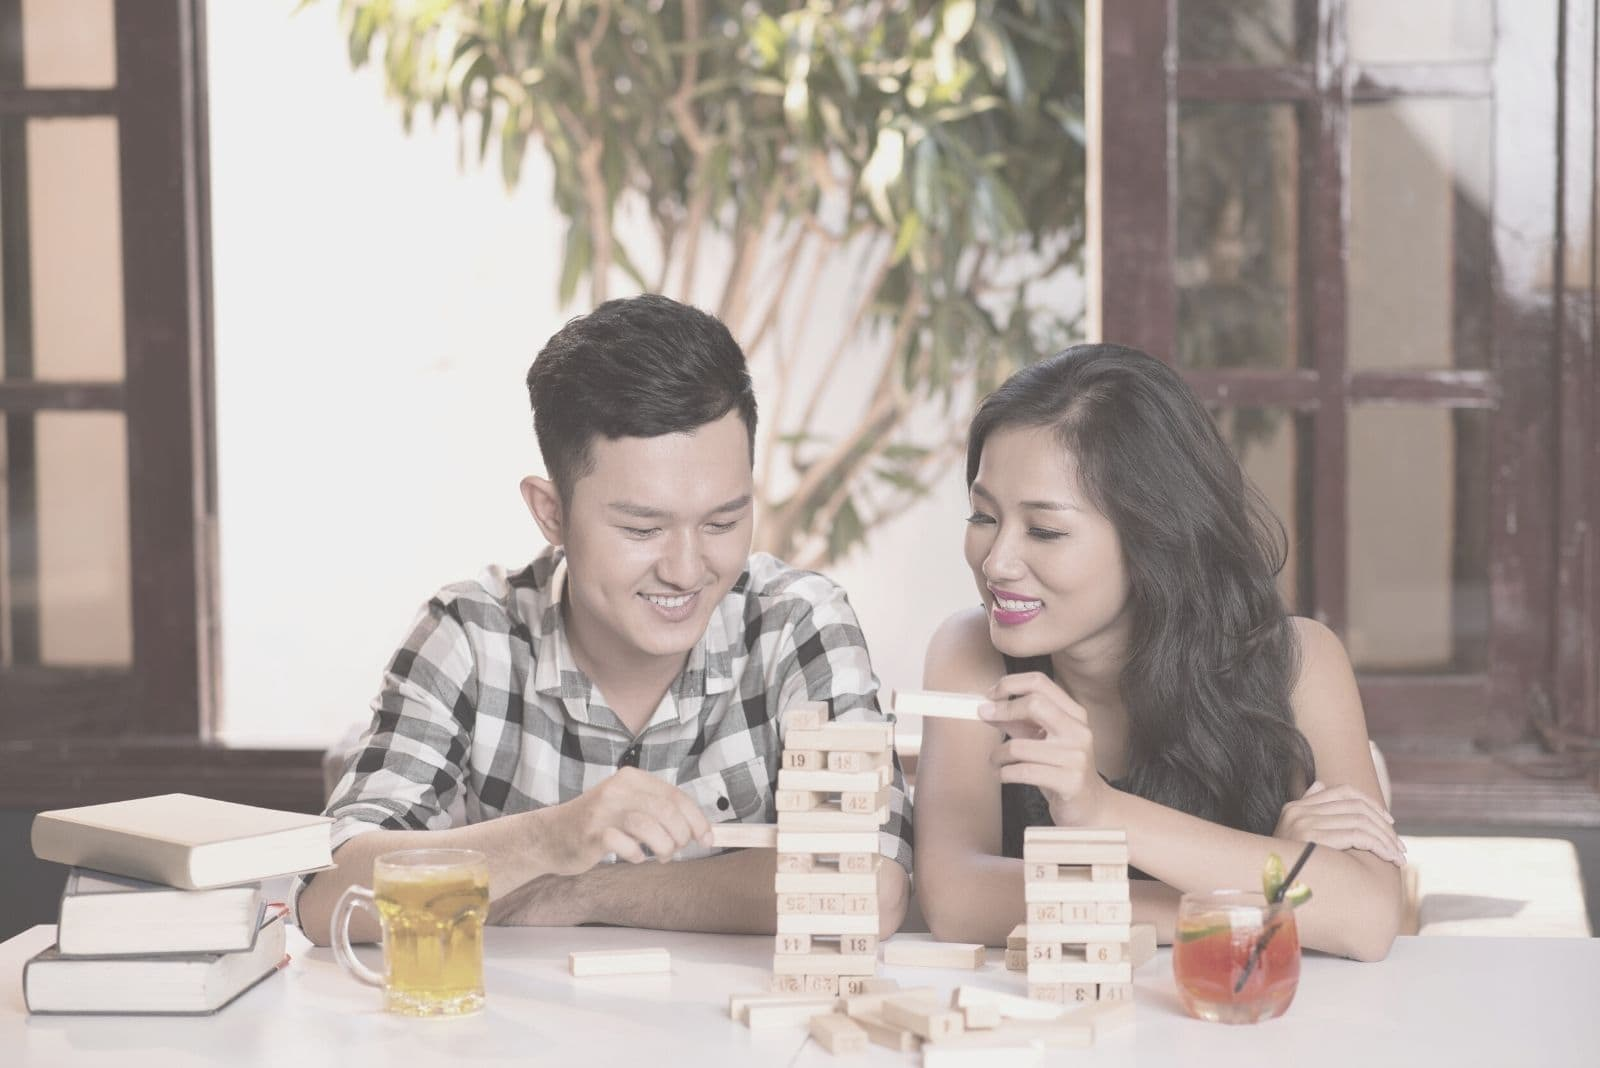 asian couple playing jenga game indoors with drinks on the side